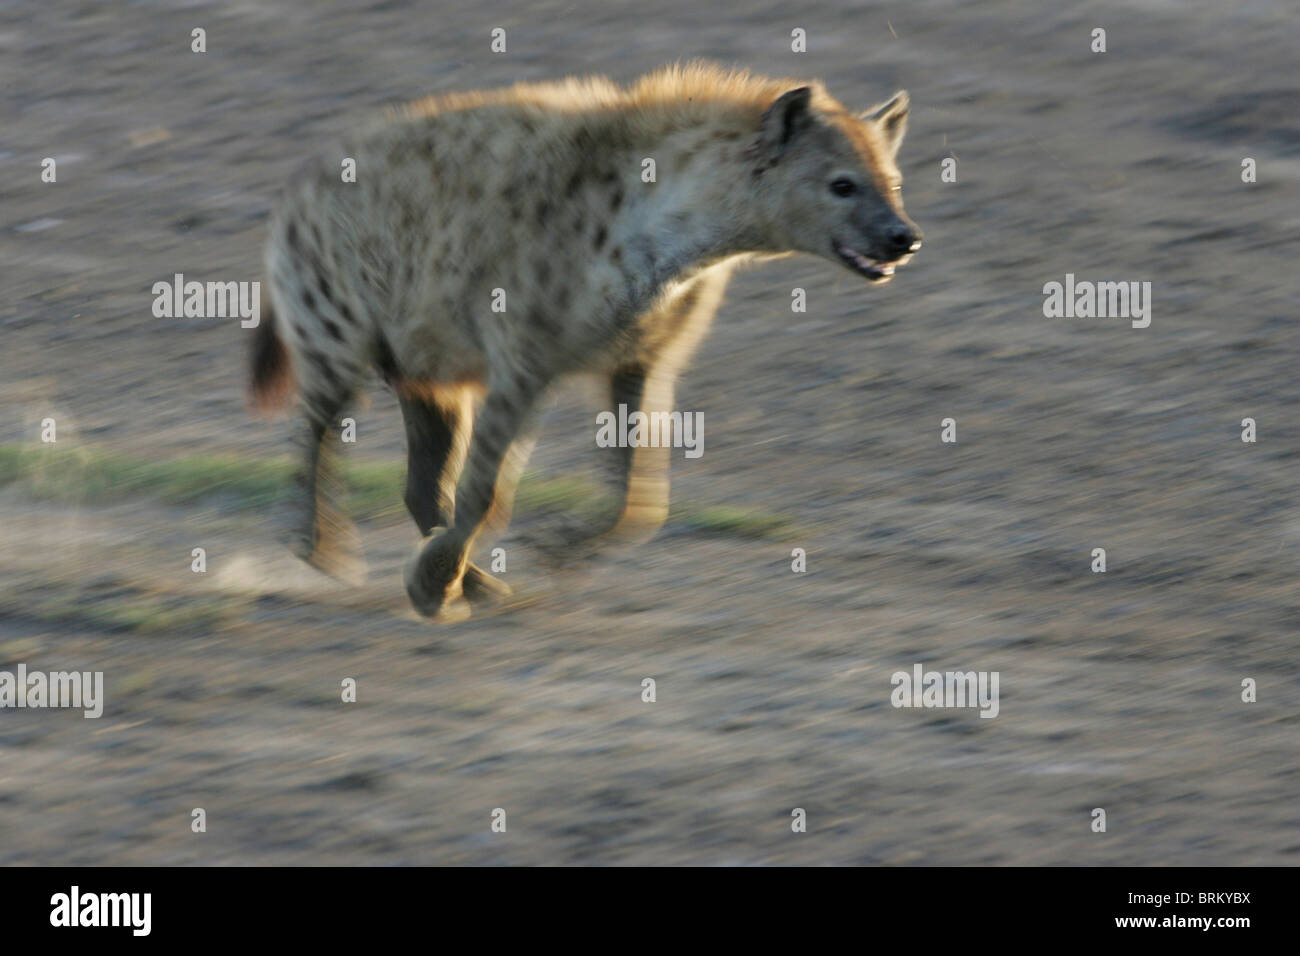 Spotted hyena on the run in the dust and fading light - Stock Image